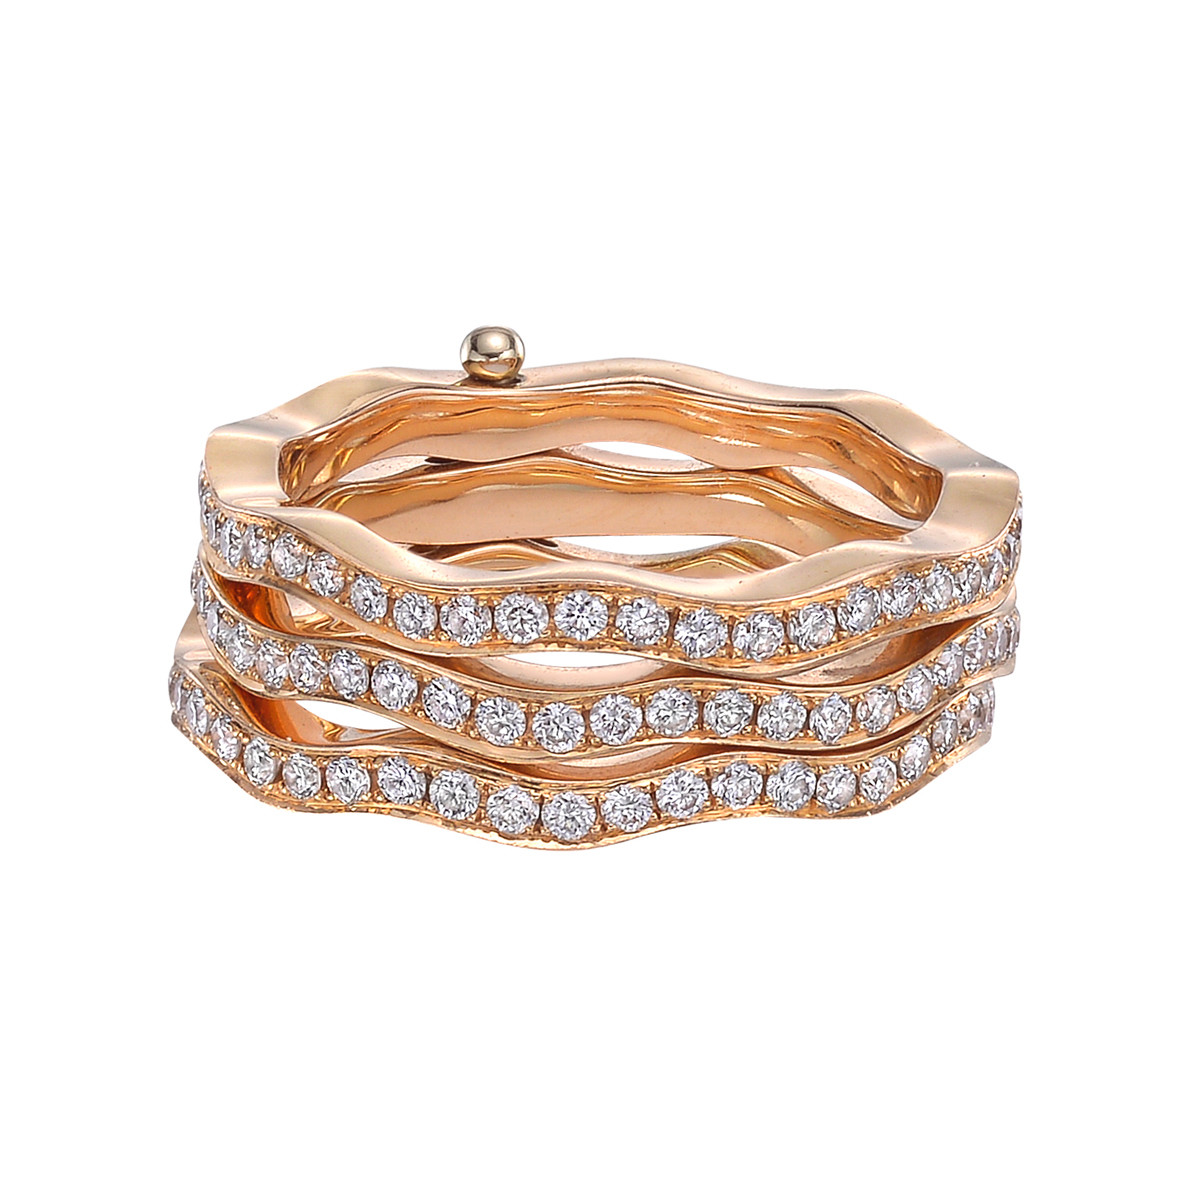 "Gilan ""Playful Cintemani"" Triple-Row Band Ring"